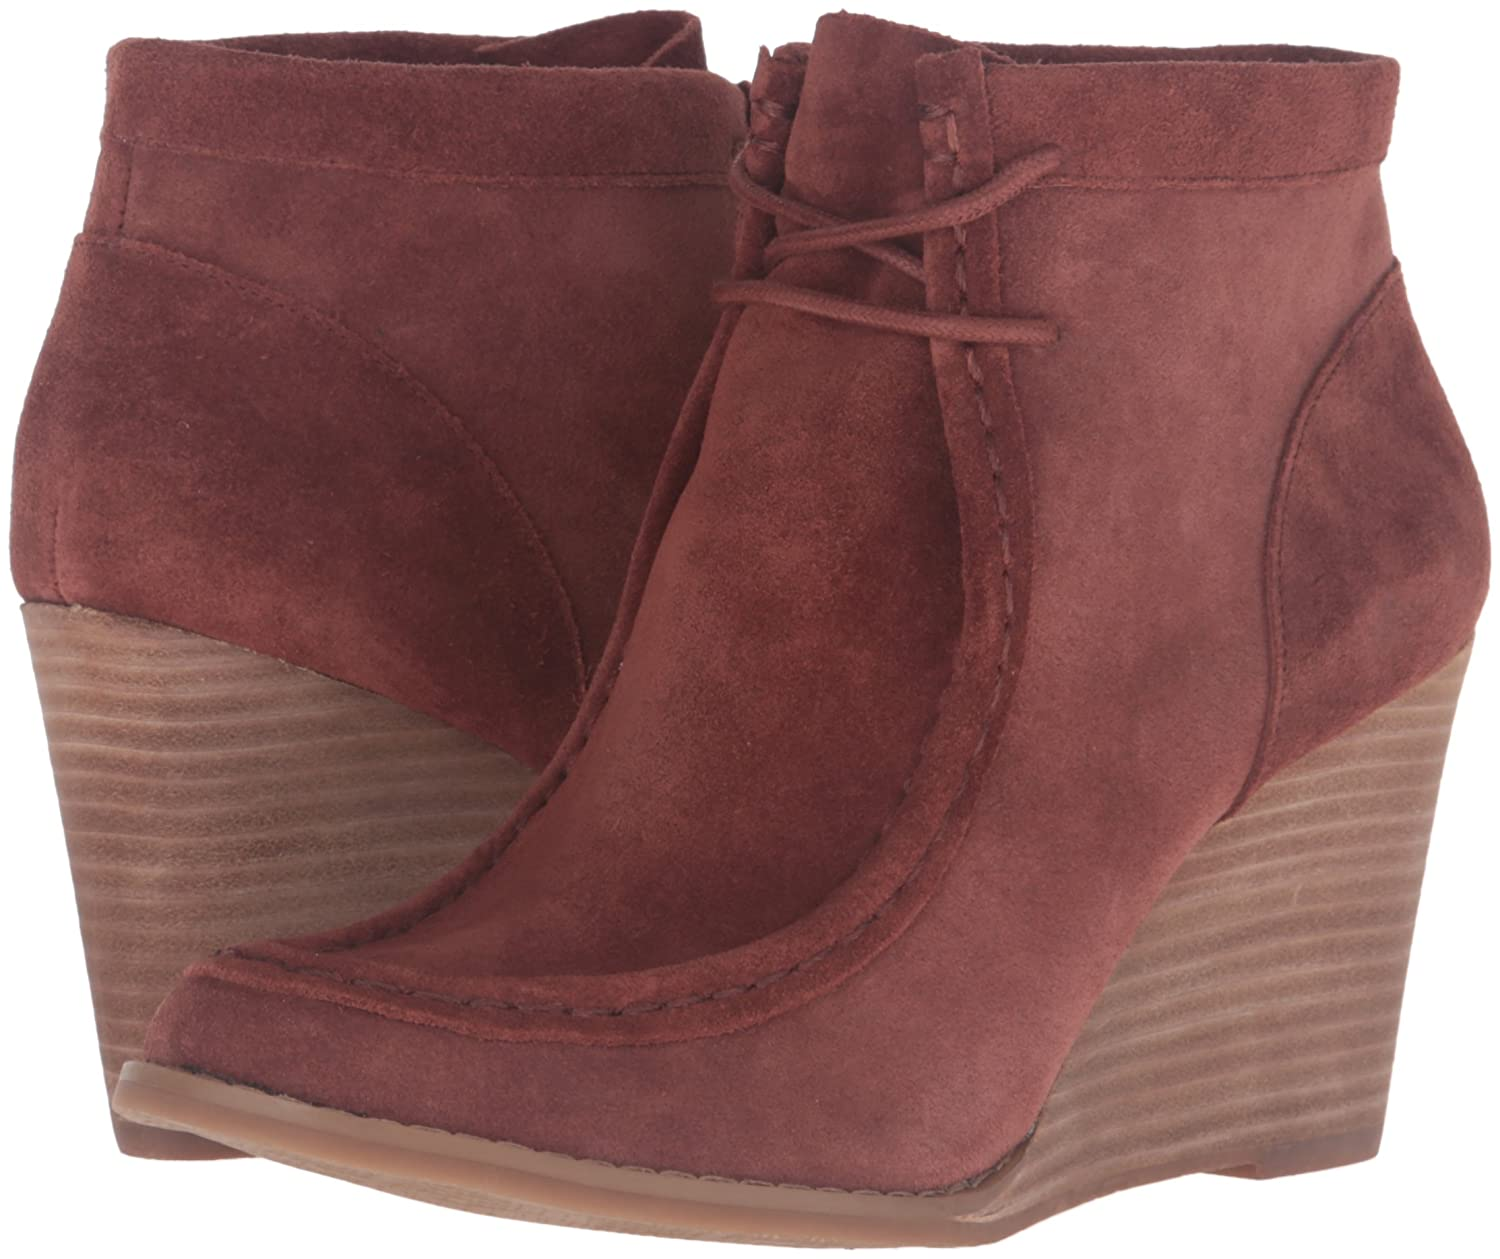 Lucky Brand Women's Ysabel Ankle Bootie B01CGWWS40 9 B(M) US|Russet